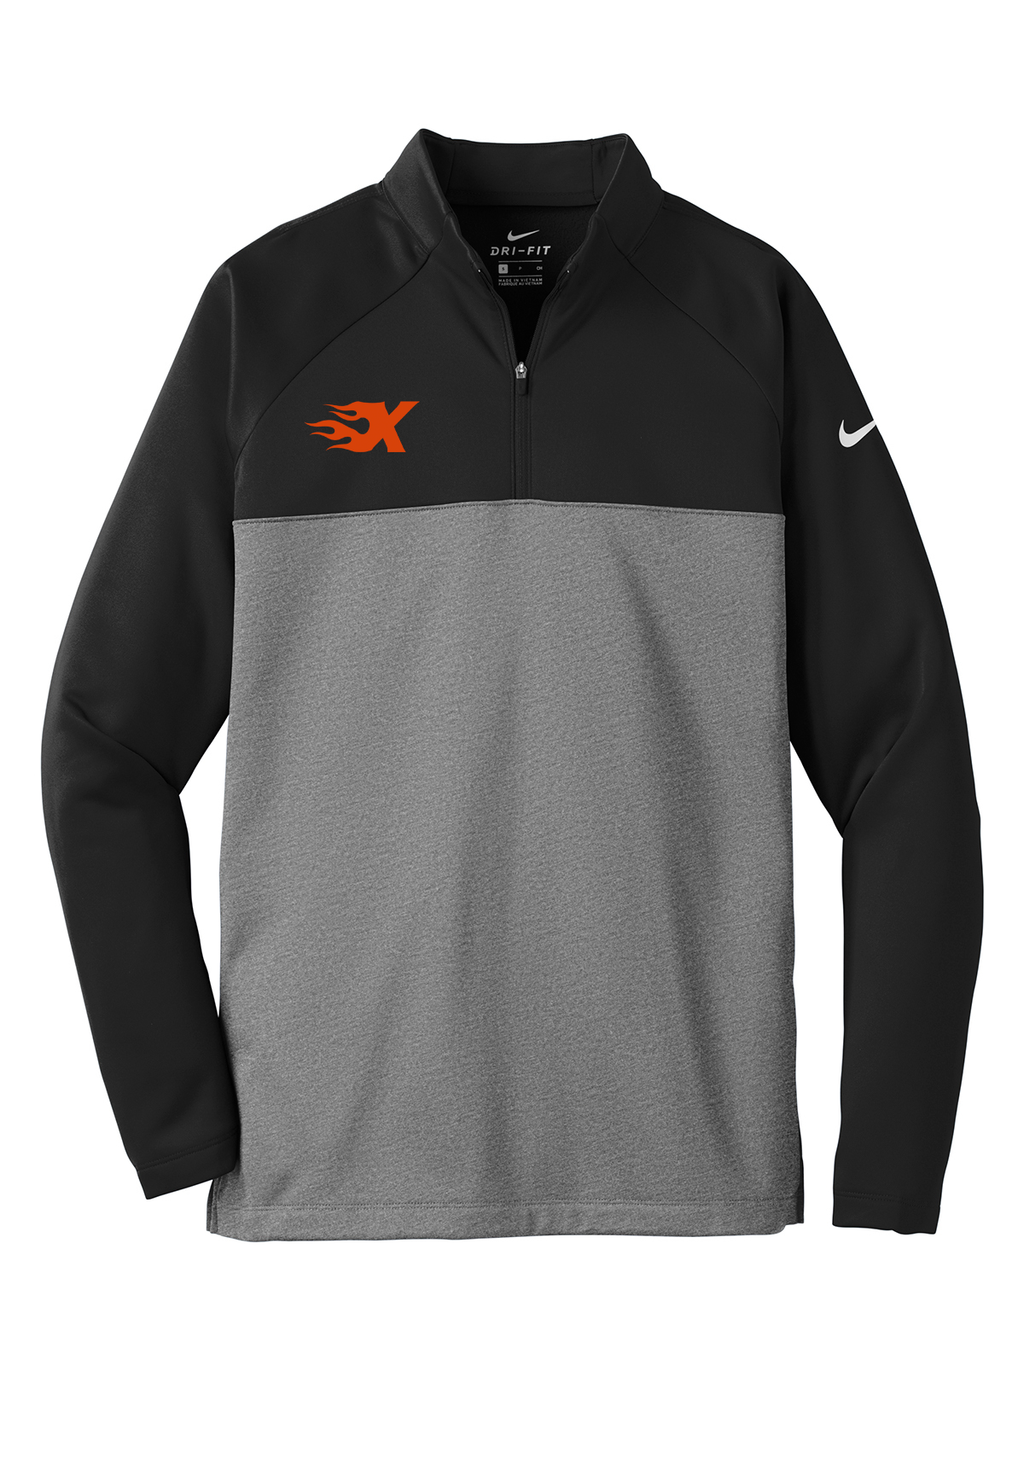 Xtreme Lacrosse Black/Grey Nike Therma-FIT Fleece